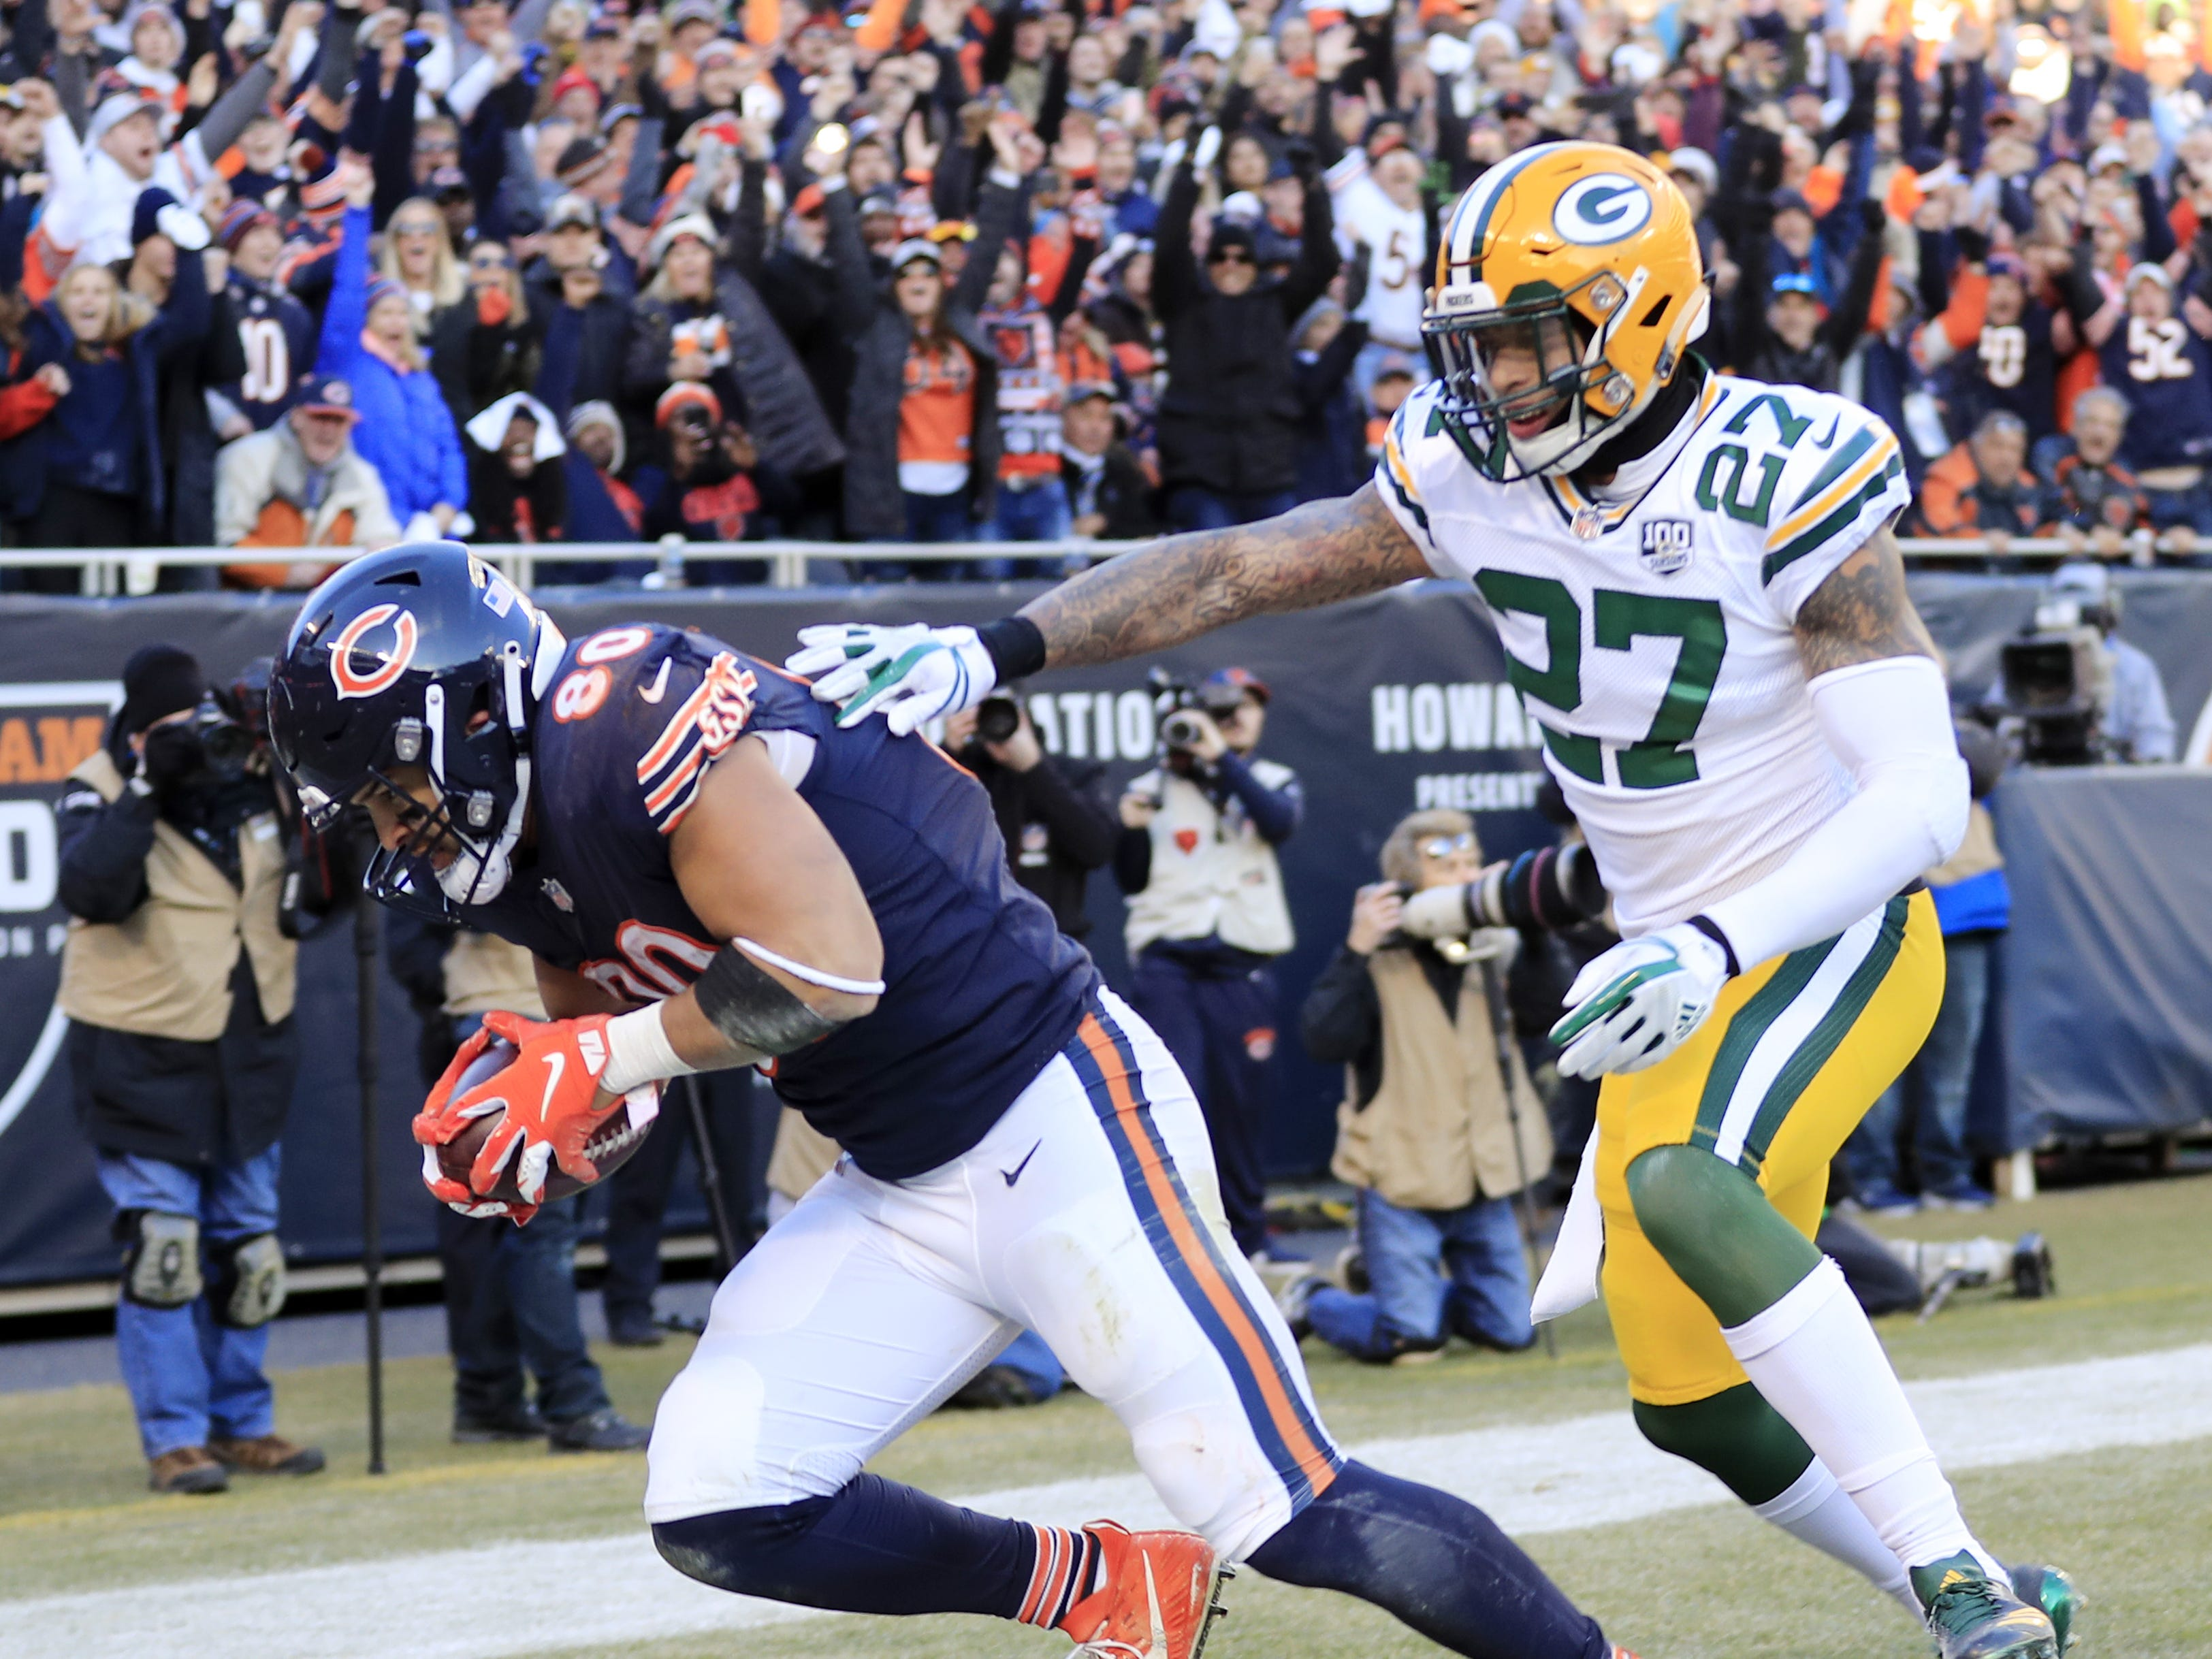 Chicago Bears tight end Trey Burton (80) catches a touchdown against Green Bay Packers defensive back Josh Jones (27) in the fourth quarter at Soldier Field on Sunday, December 16, 2018 in Chicago, Illinois. Adam Wesley/USA TODAY NETWORK-Wis